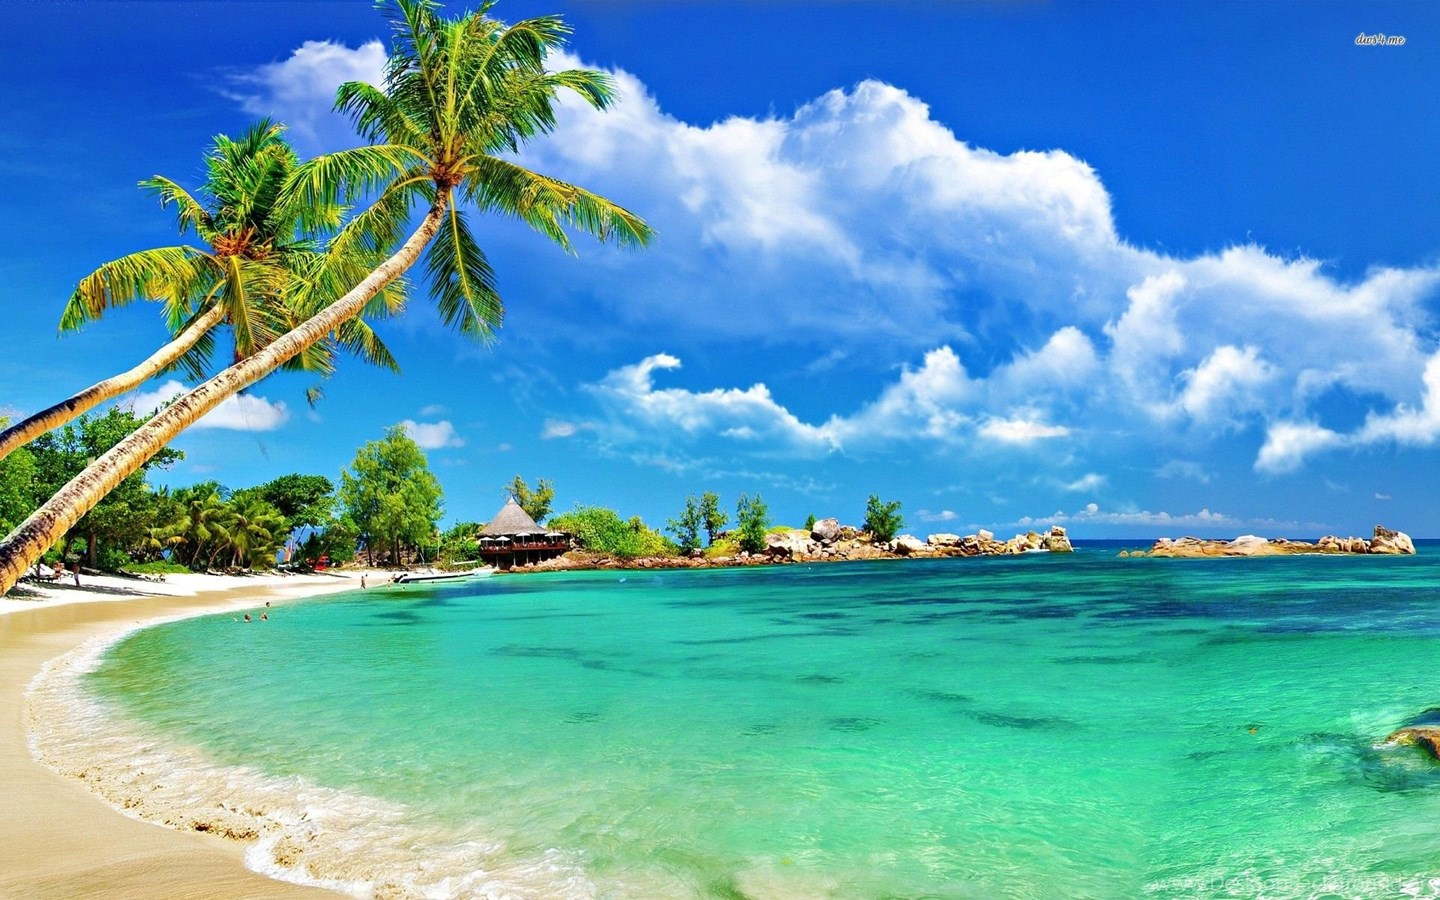 Hd Tropical Island Beach Paradise Wallpapers And Backgrounds: Tropical Beach Hammock Wallpaper. Desktop Background